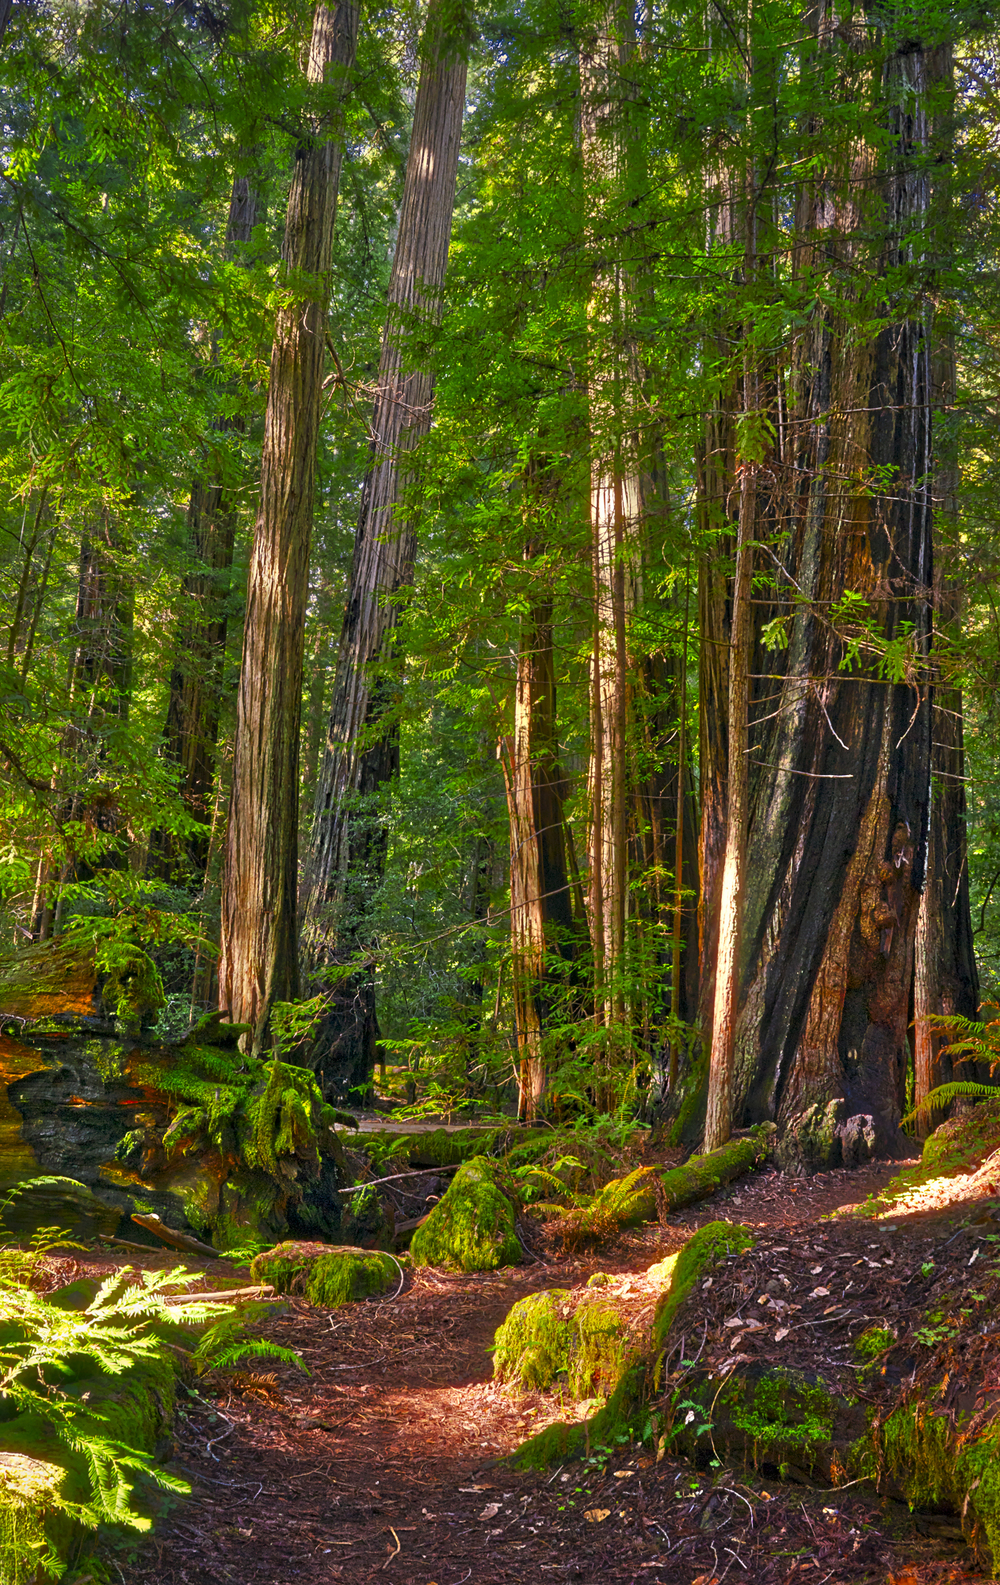 Montgomery Woods State Park